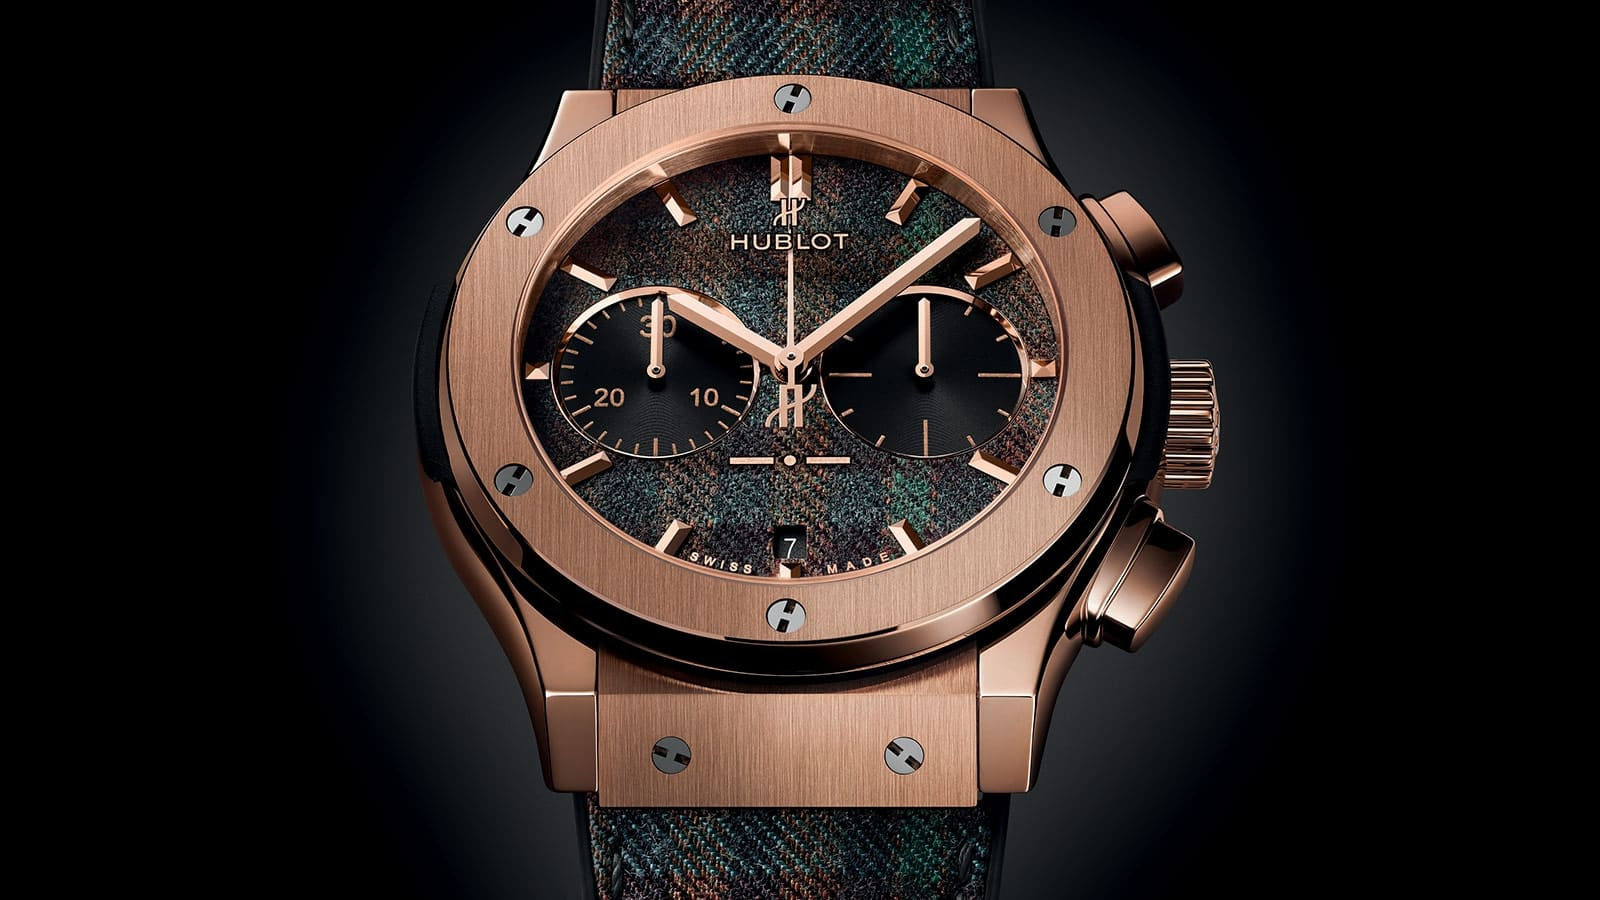 Hublot Classic Fusion Italia collection